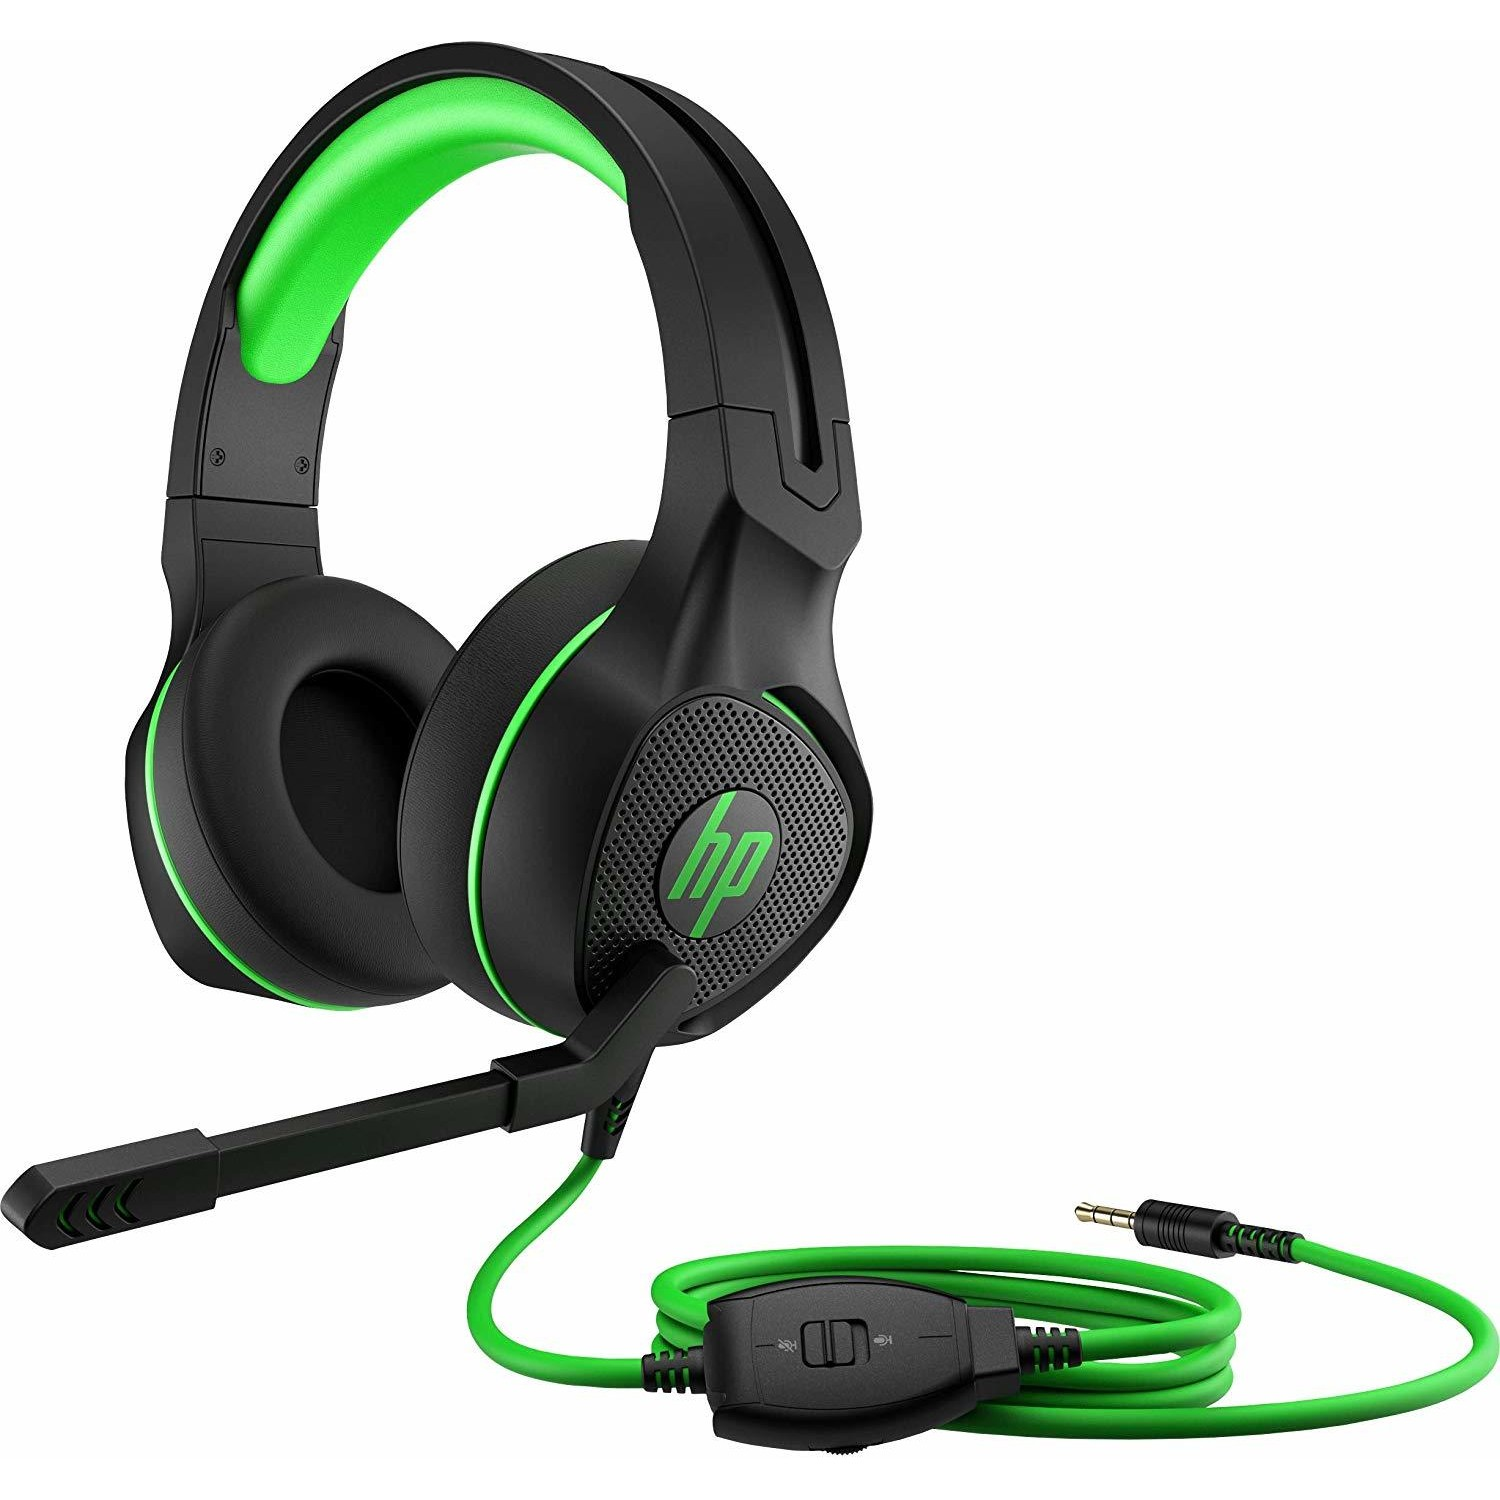 HP Pavilion Gaming headset 600 on sale